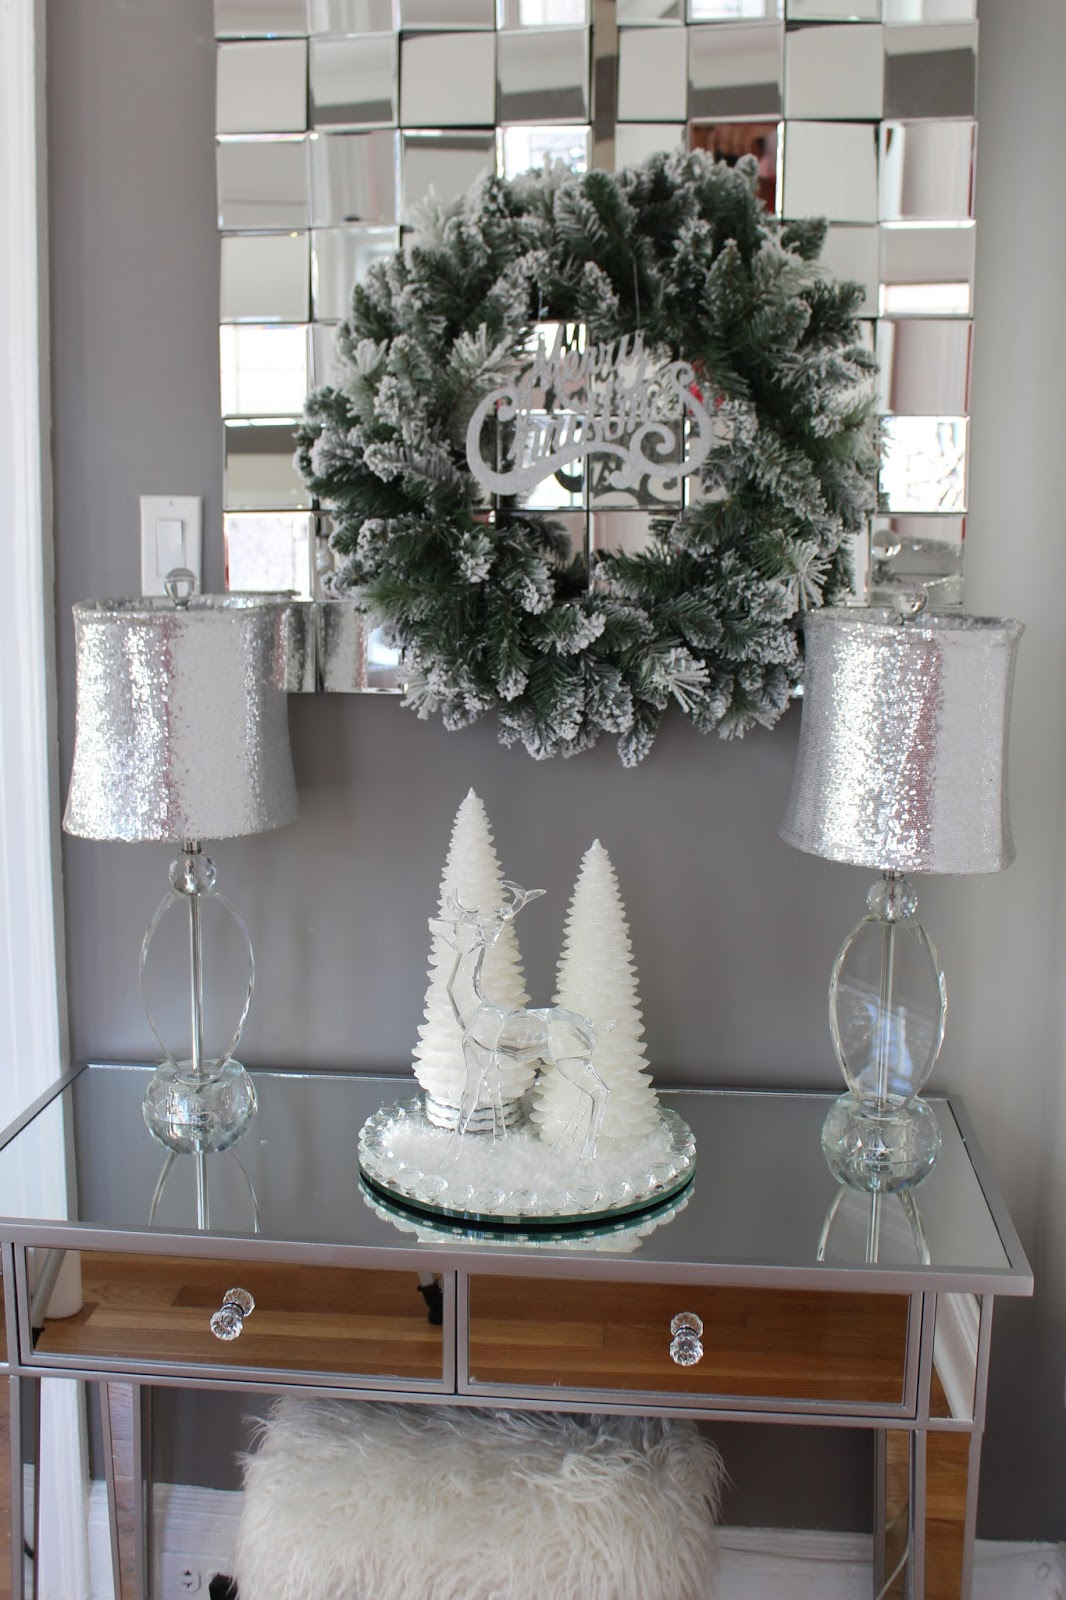 2017 christmas decorating ideas entryway - 2017 Christmas Decorating Ideas